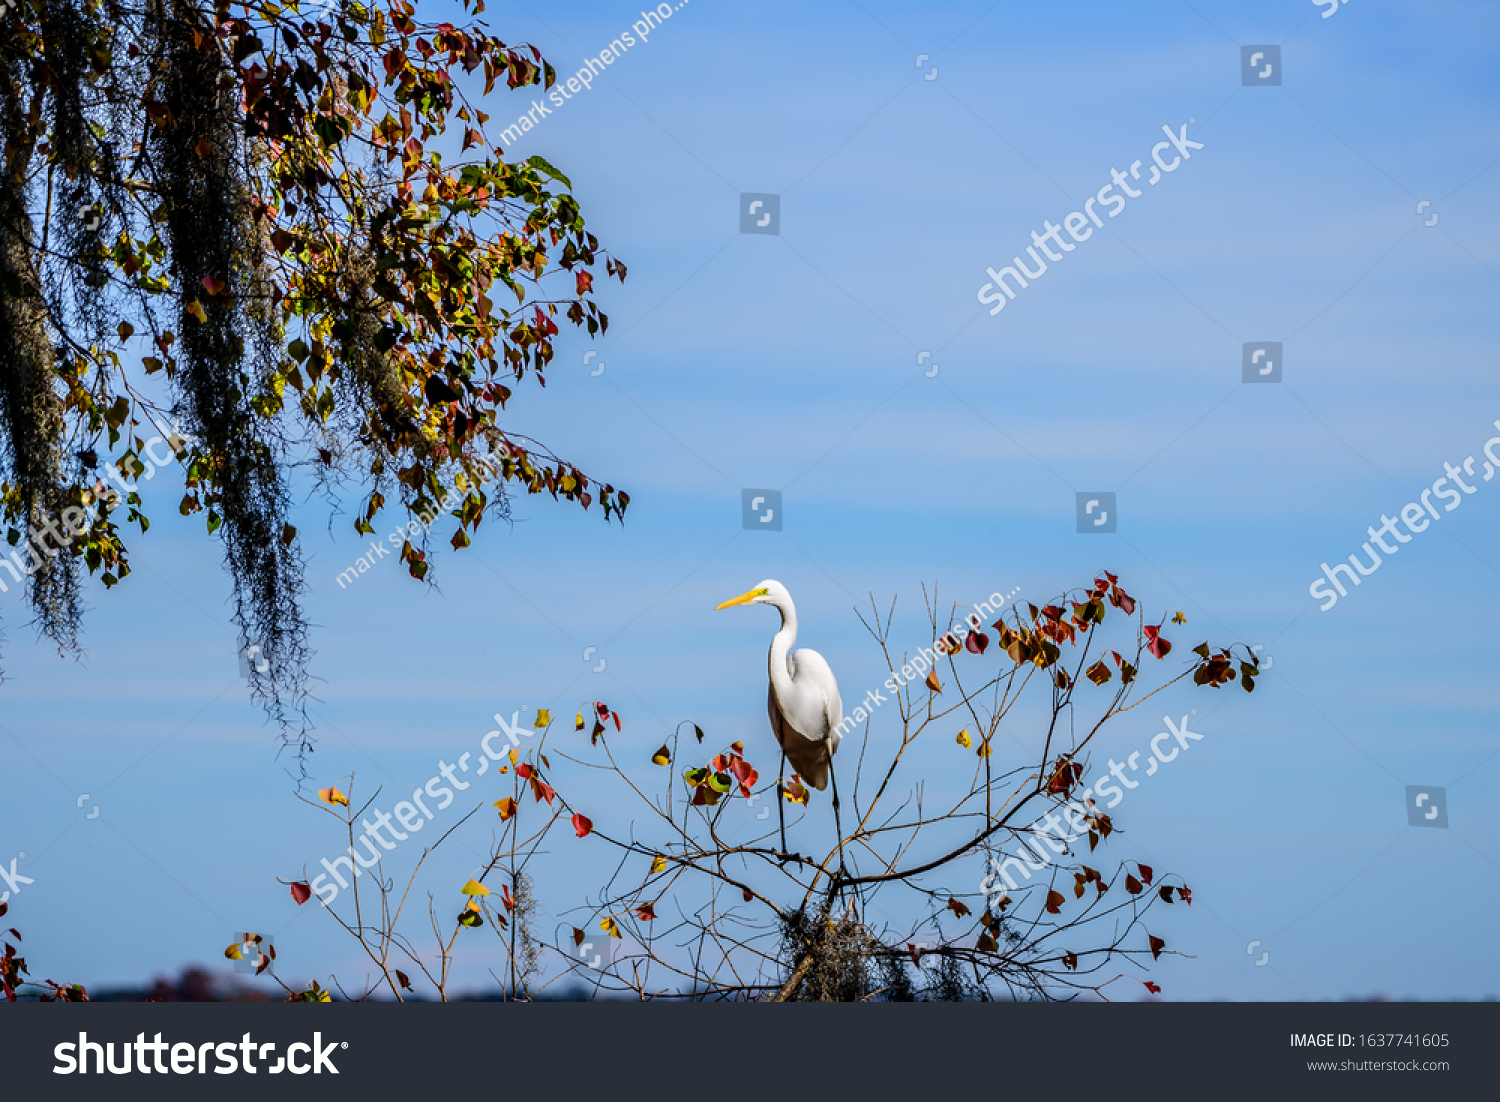 stock-photo-great-white-egret-ardea-alba